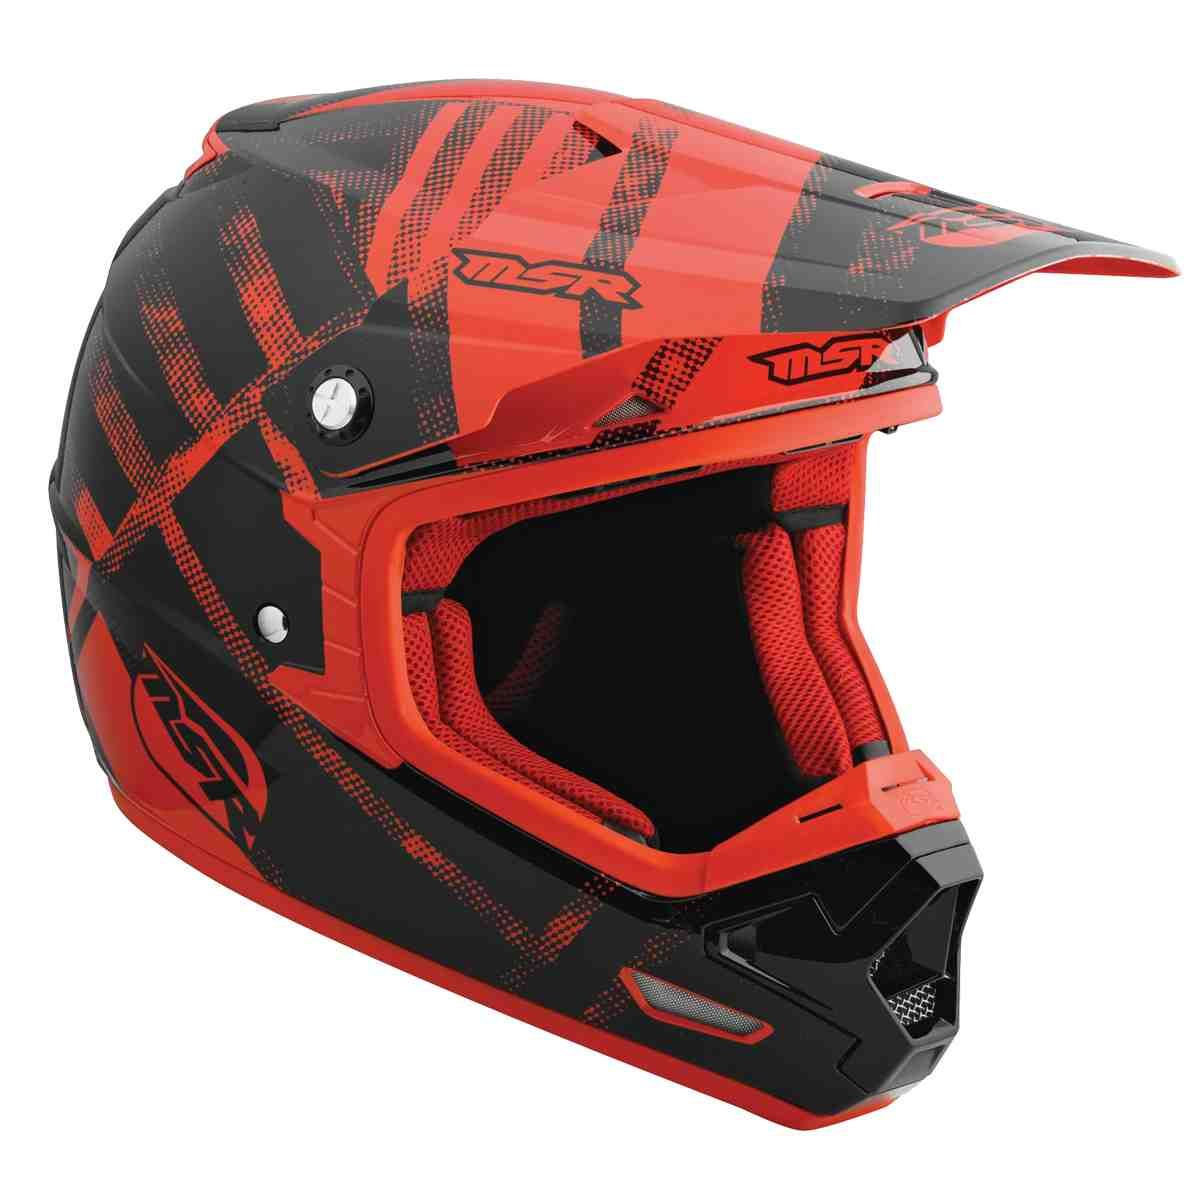 Red Dirt Bike Helmets Dirt Bike Helmets Bike Helmet Dirt Bike Gear